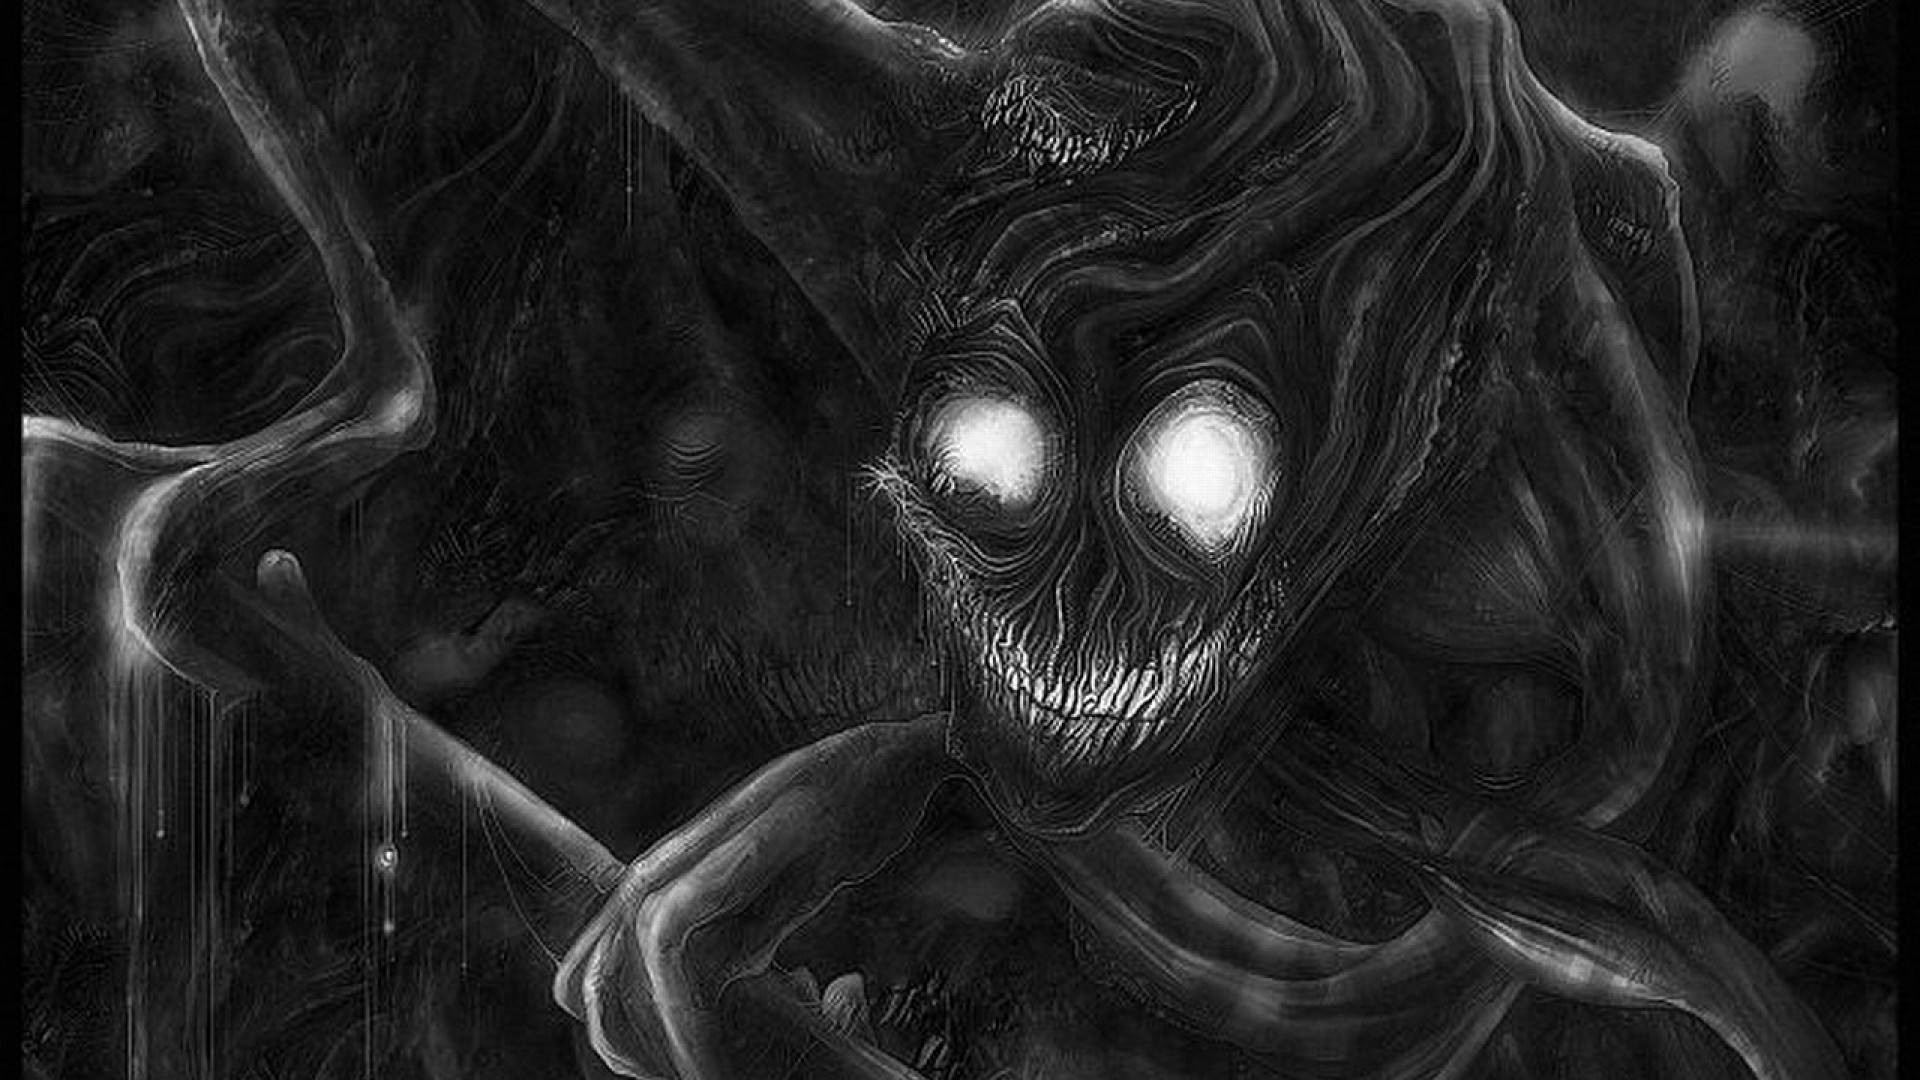 Scary Wallpaper for iPhone 56 images 1920x1080